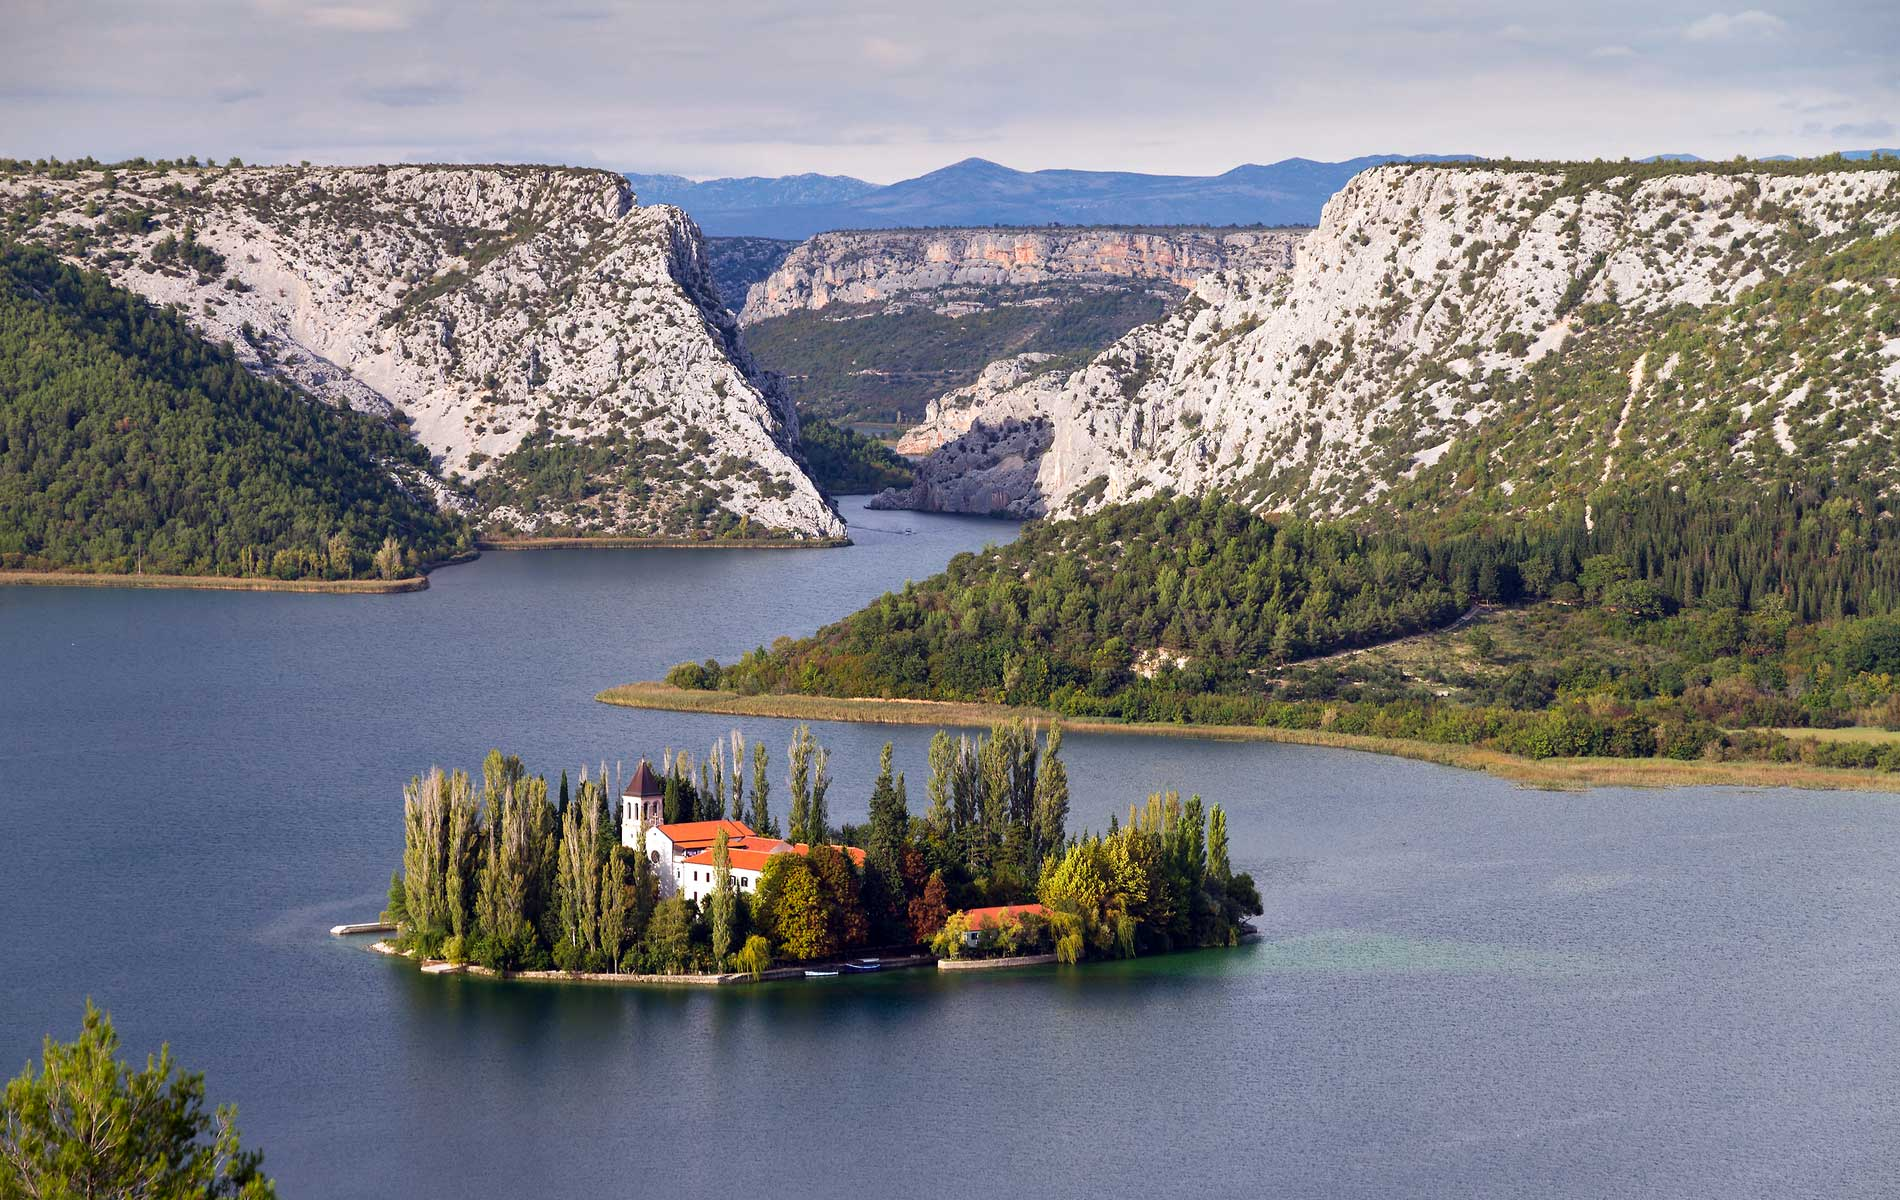 Visovac Monastery in Krka National Park, Croatia